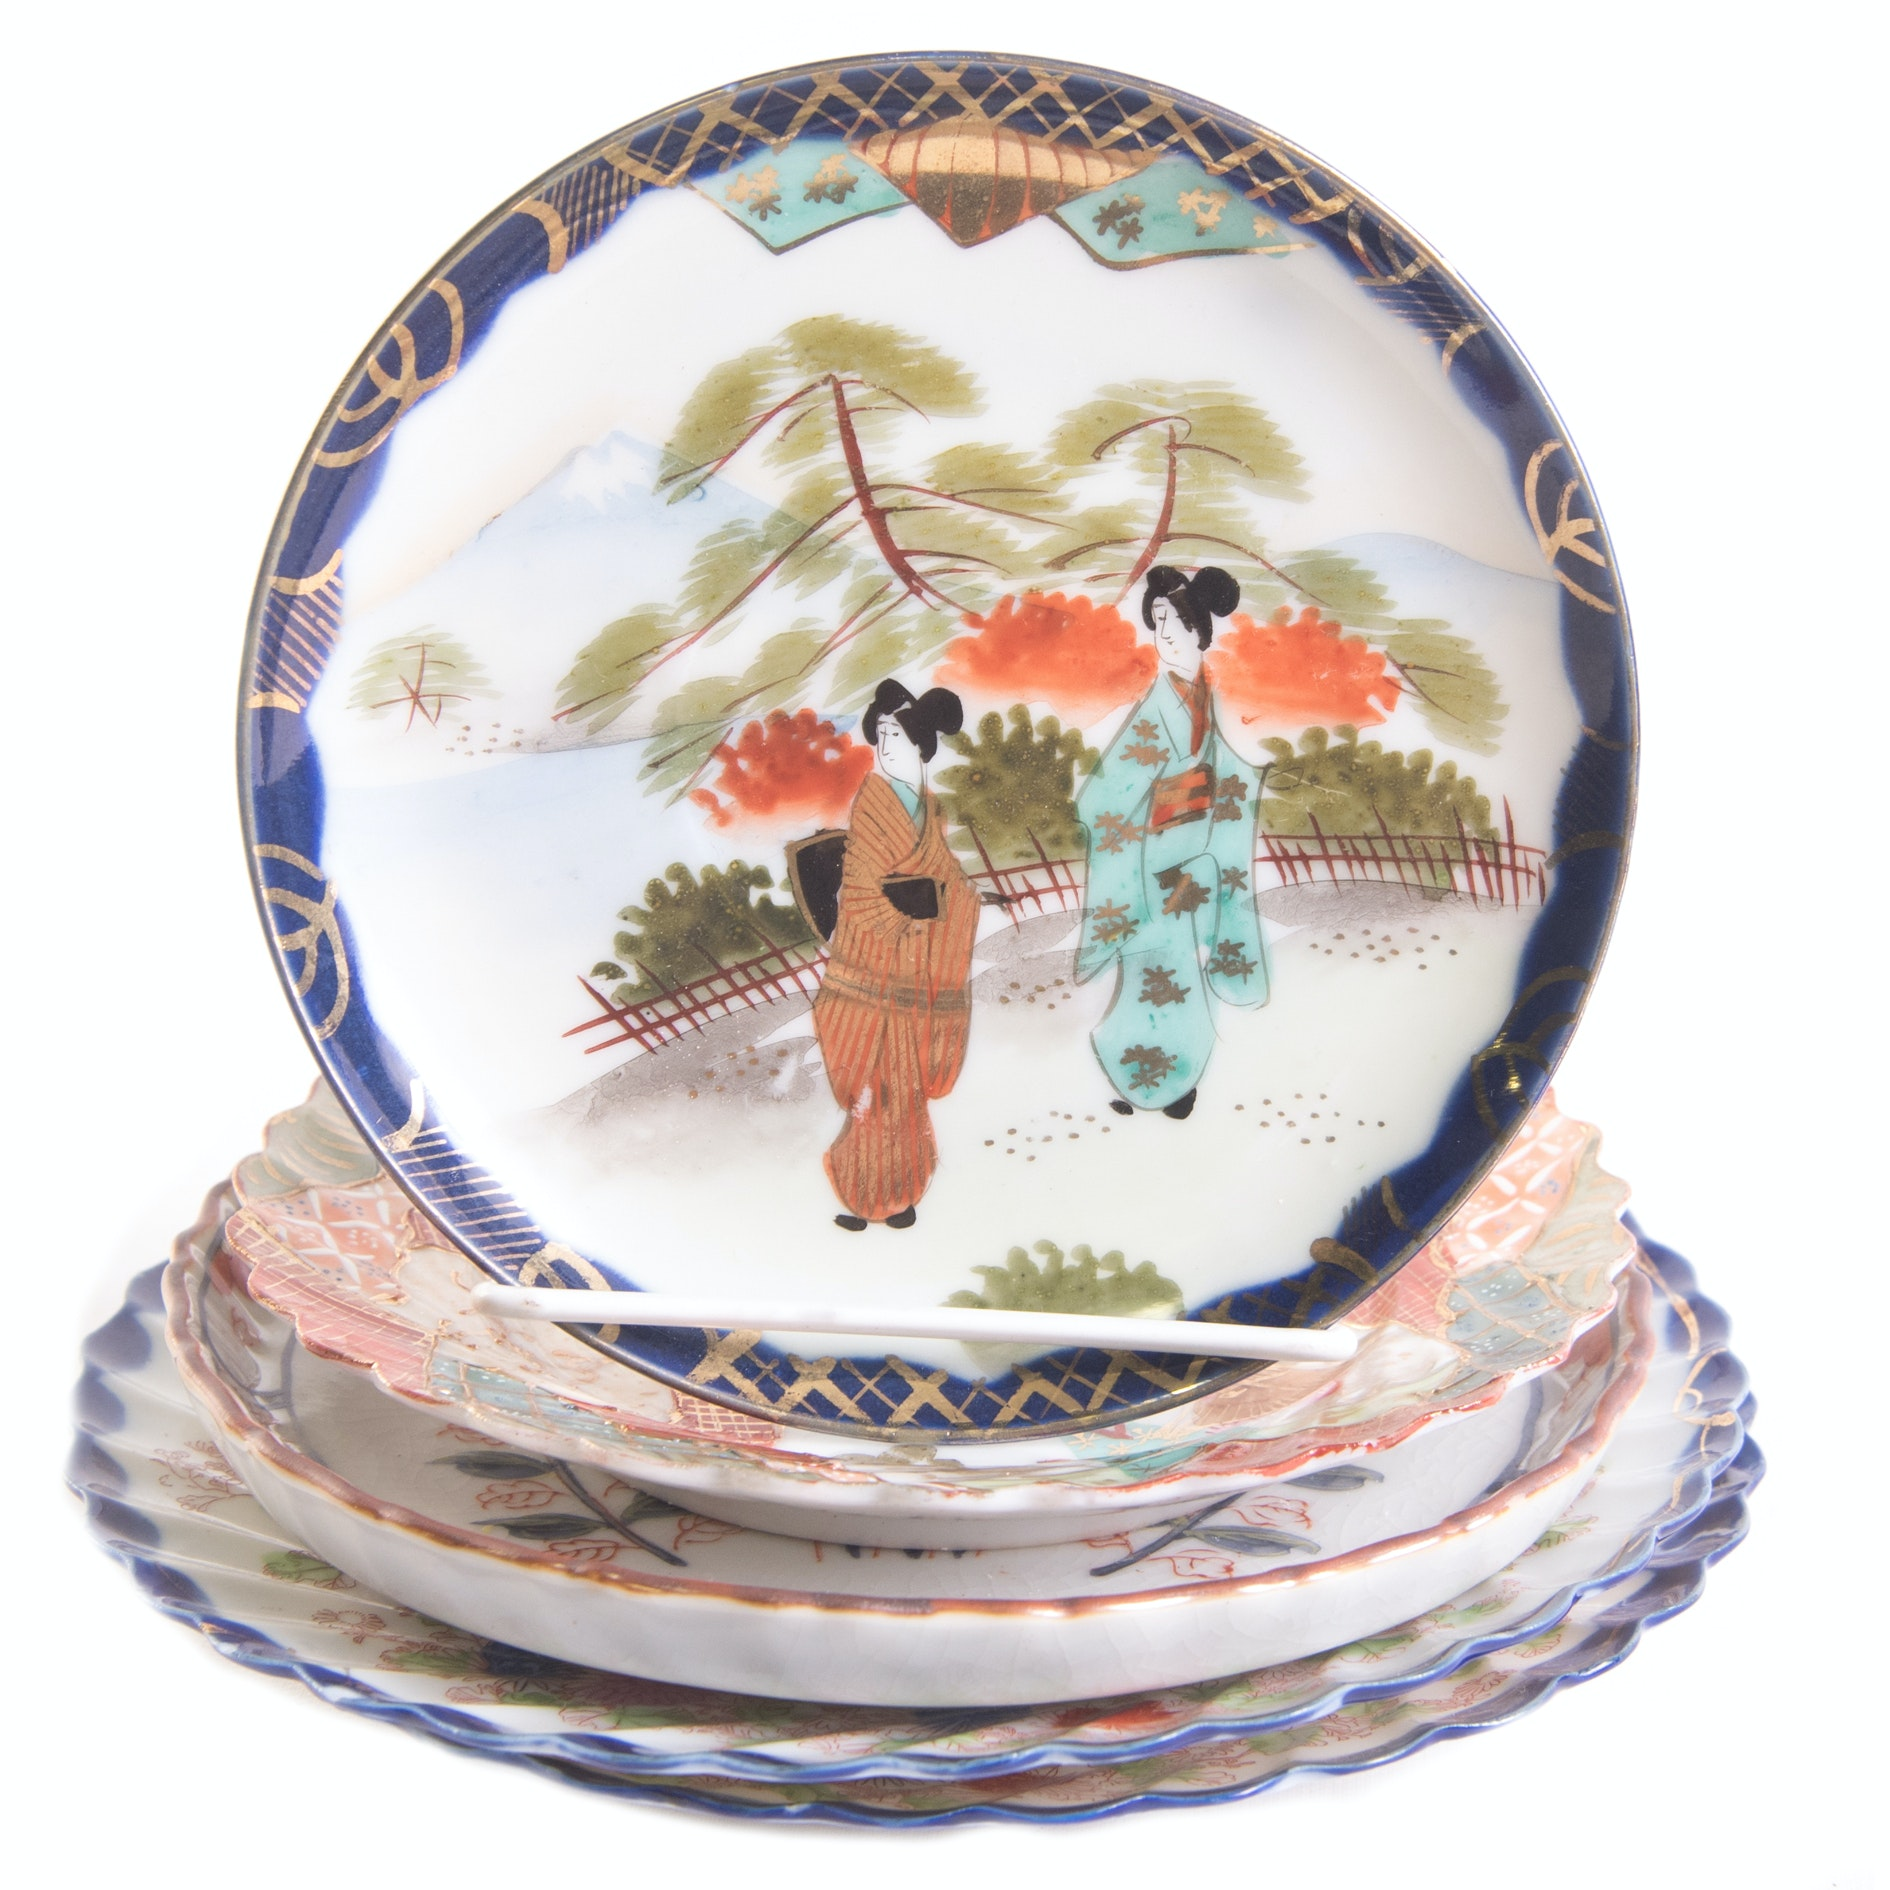 Decorative Japanese Hand Painted Porcelain Plates